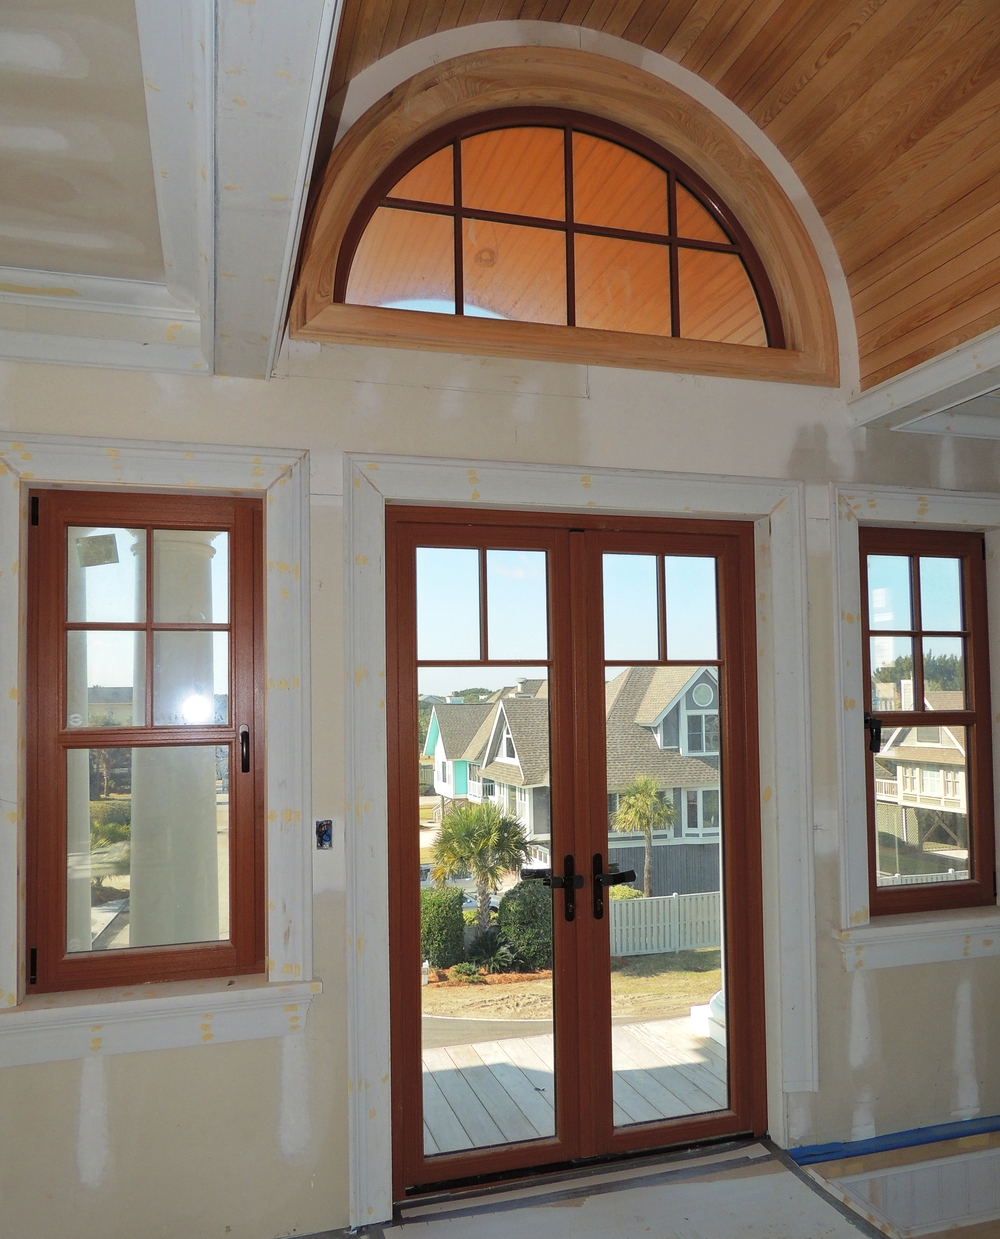 Doors Windows: HENSELSTONE WINDOW AND DOOR SYSTEMS INC